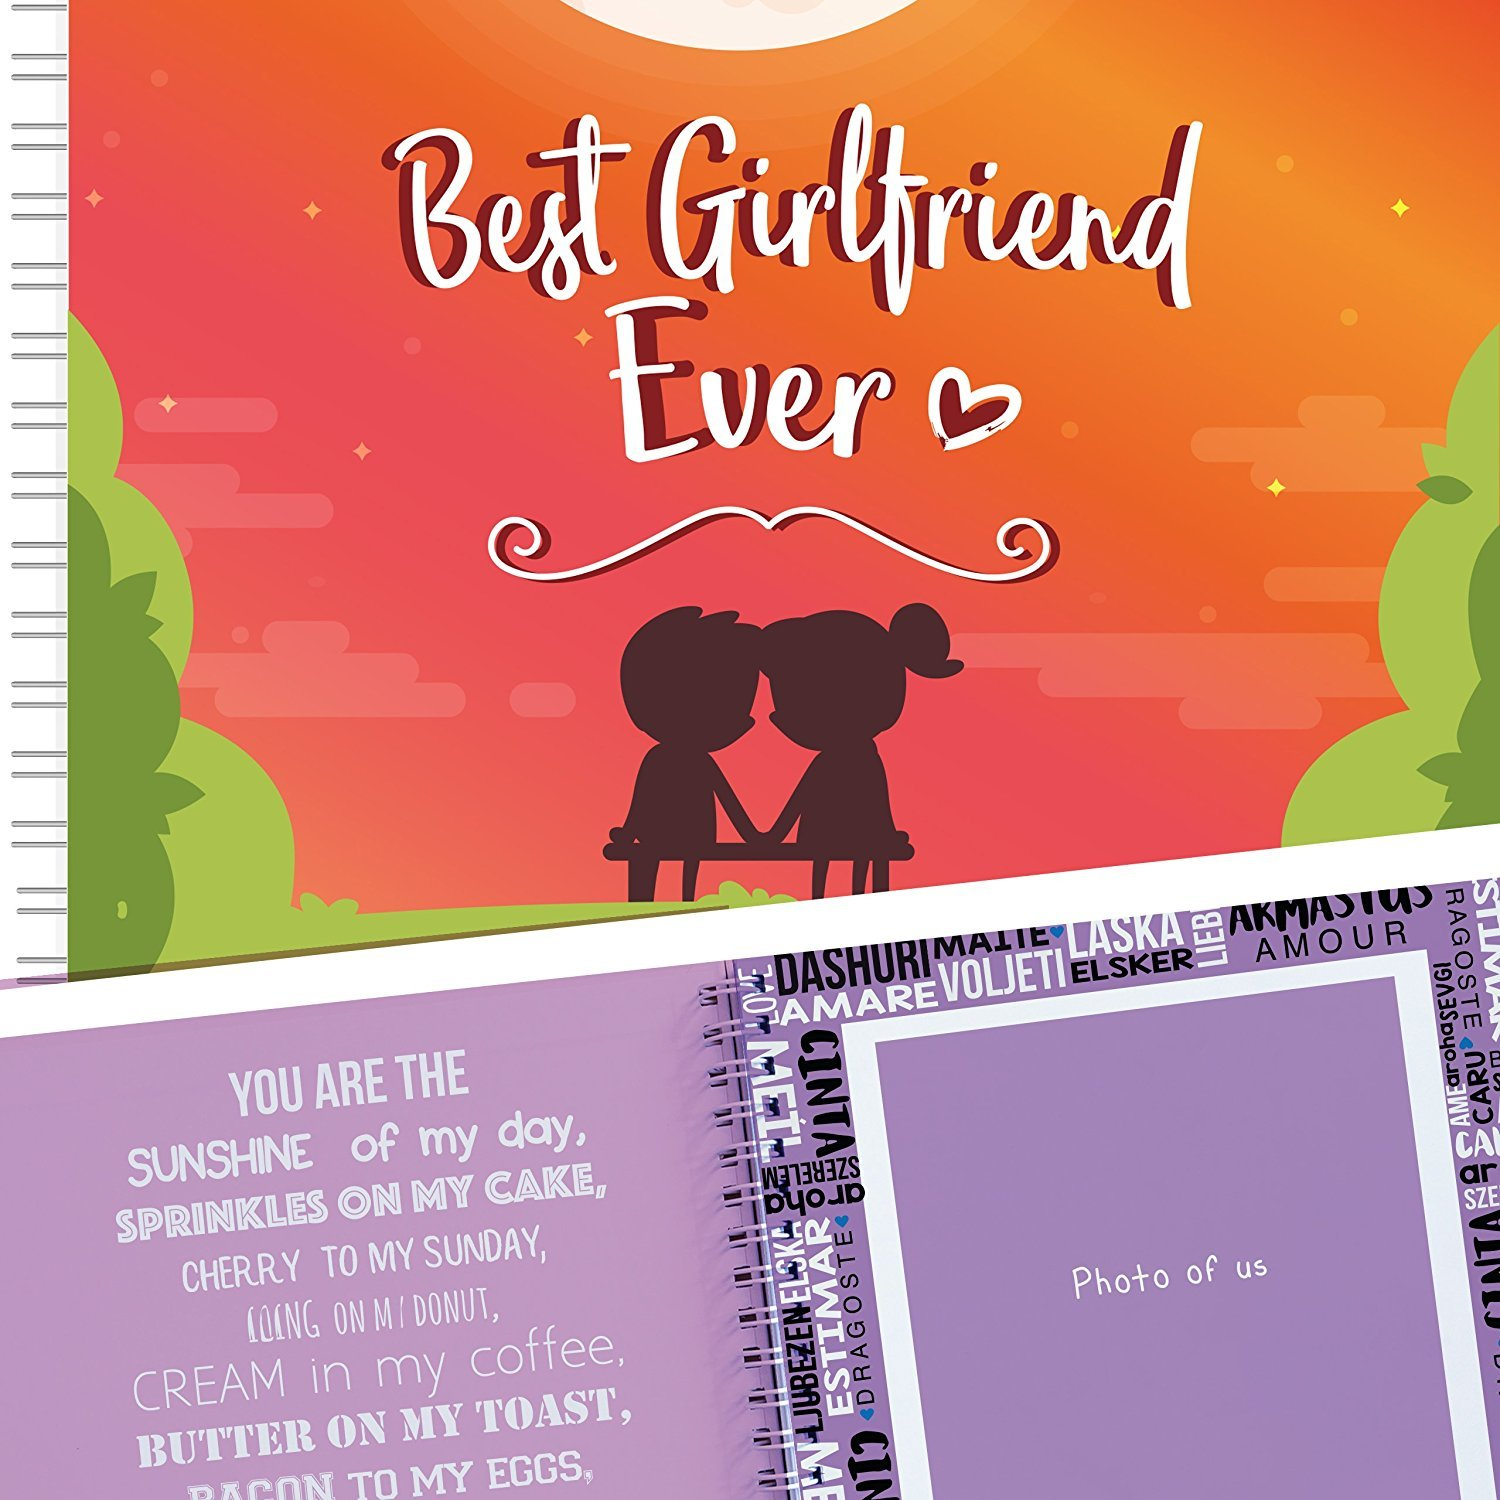 Buy Best Girlfriend Ever Memory Book The Best Romantic Gift Ideas For Your Girlfriend Your Gf Will Love This Cute Present For Her Birthday Valentine S Day Christmas Or A Special Date